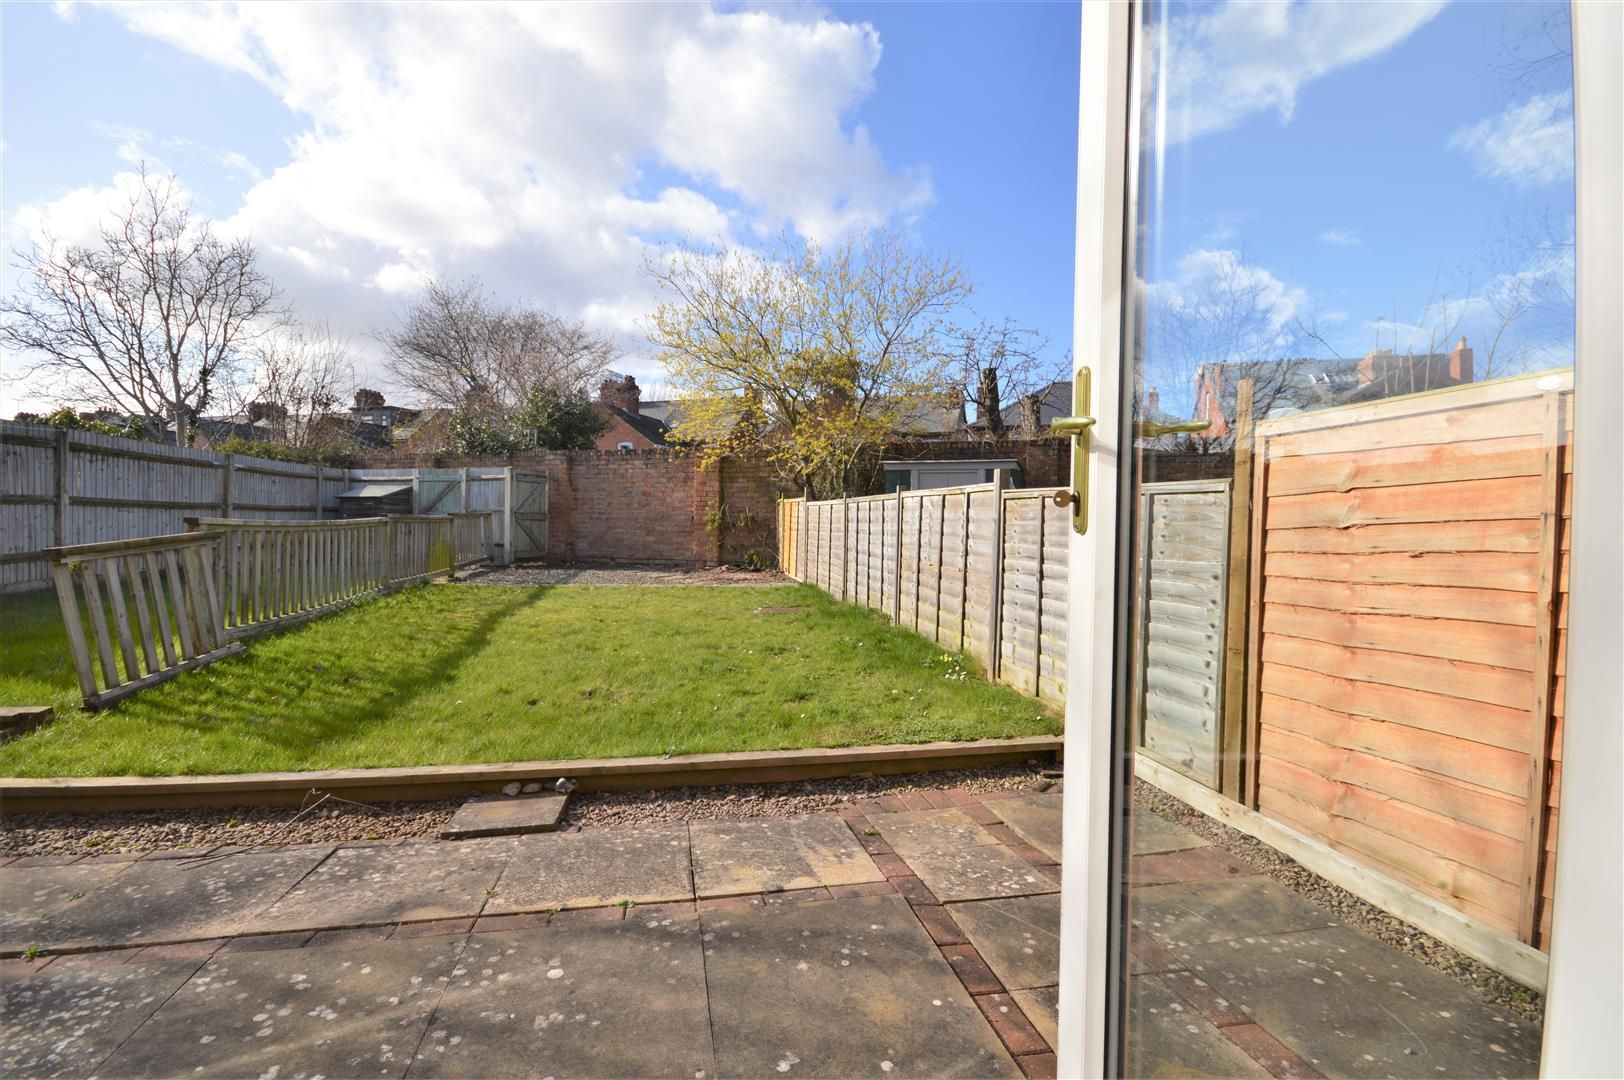 2 bed end-of-terrace for sale 13